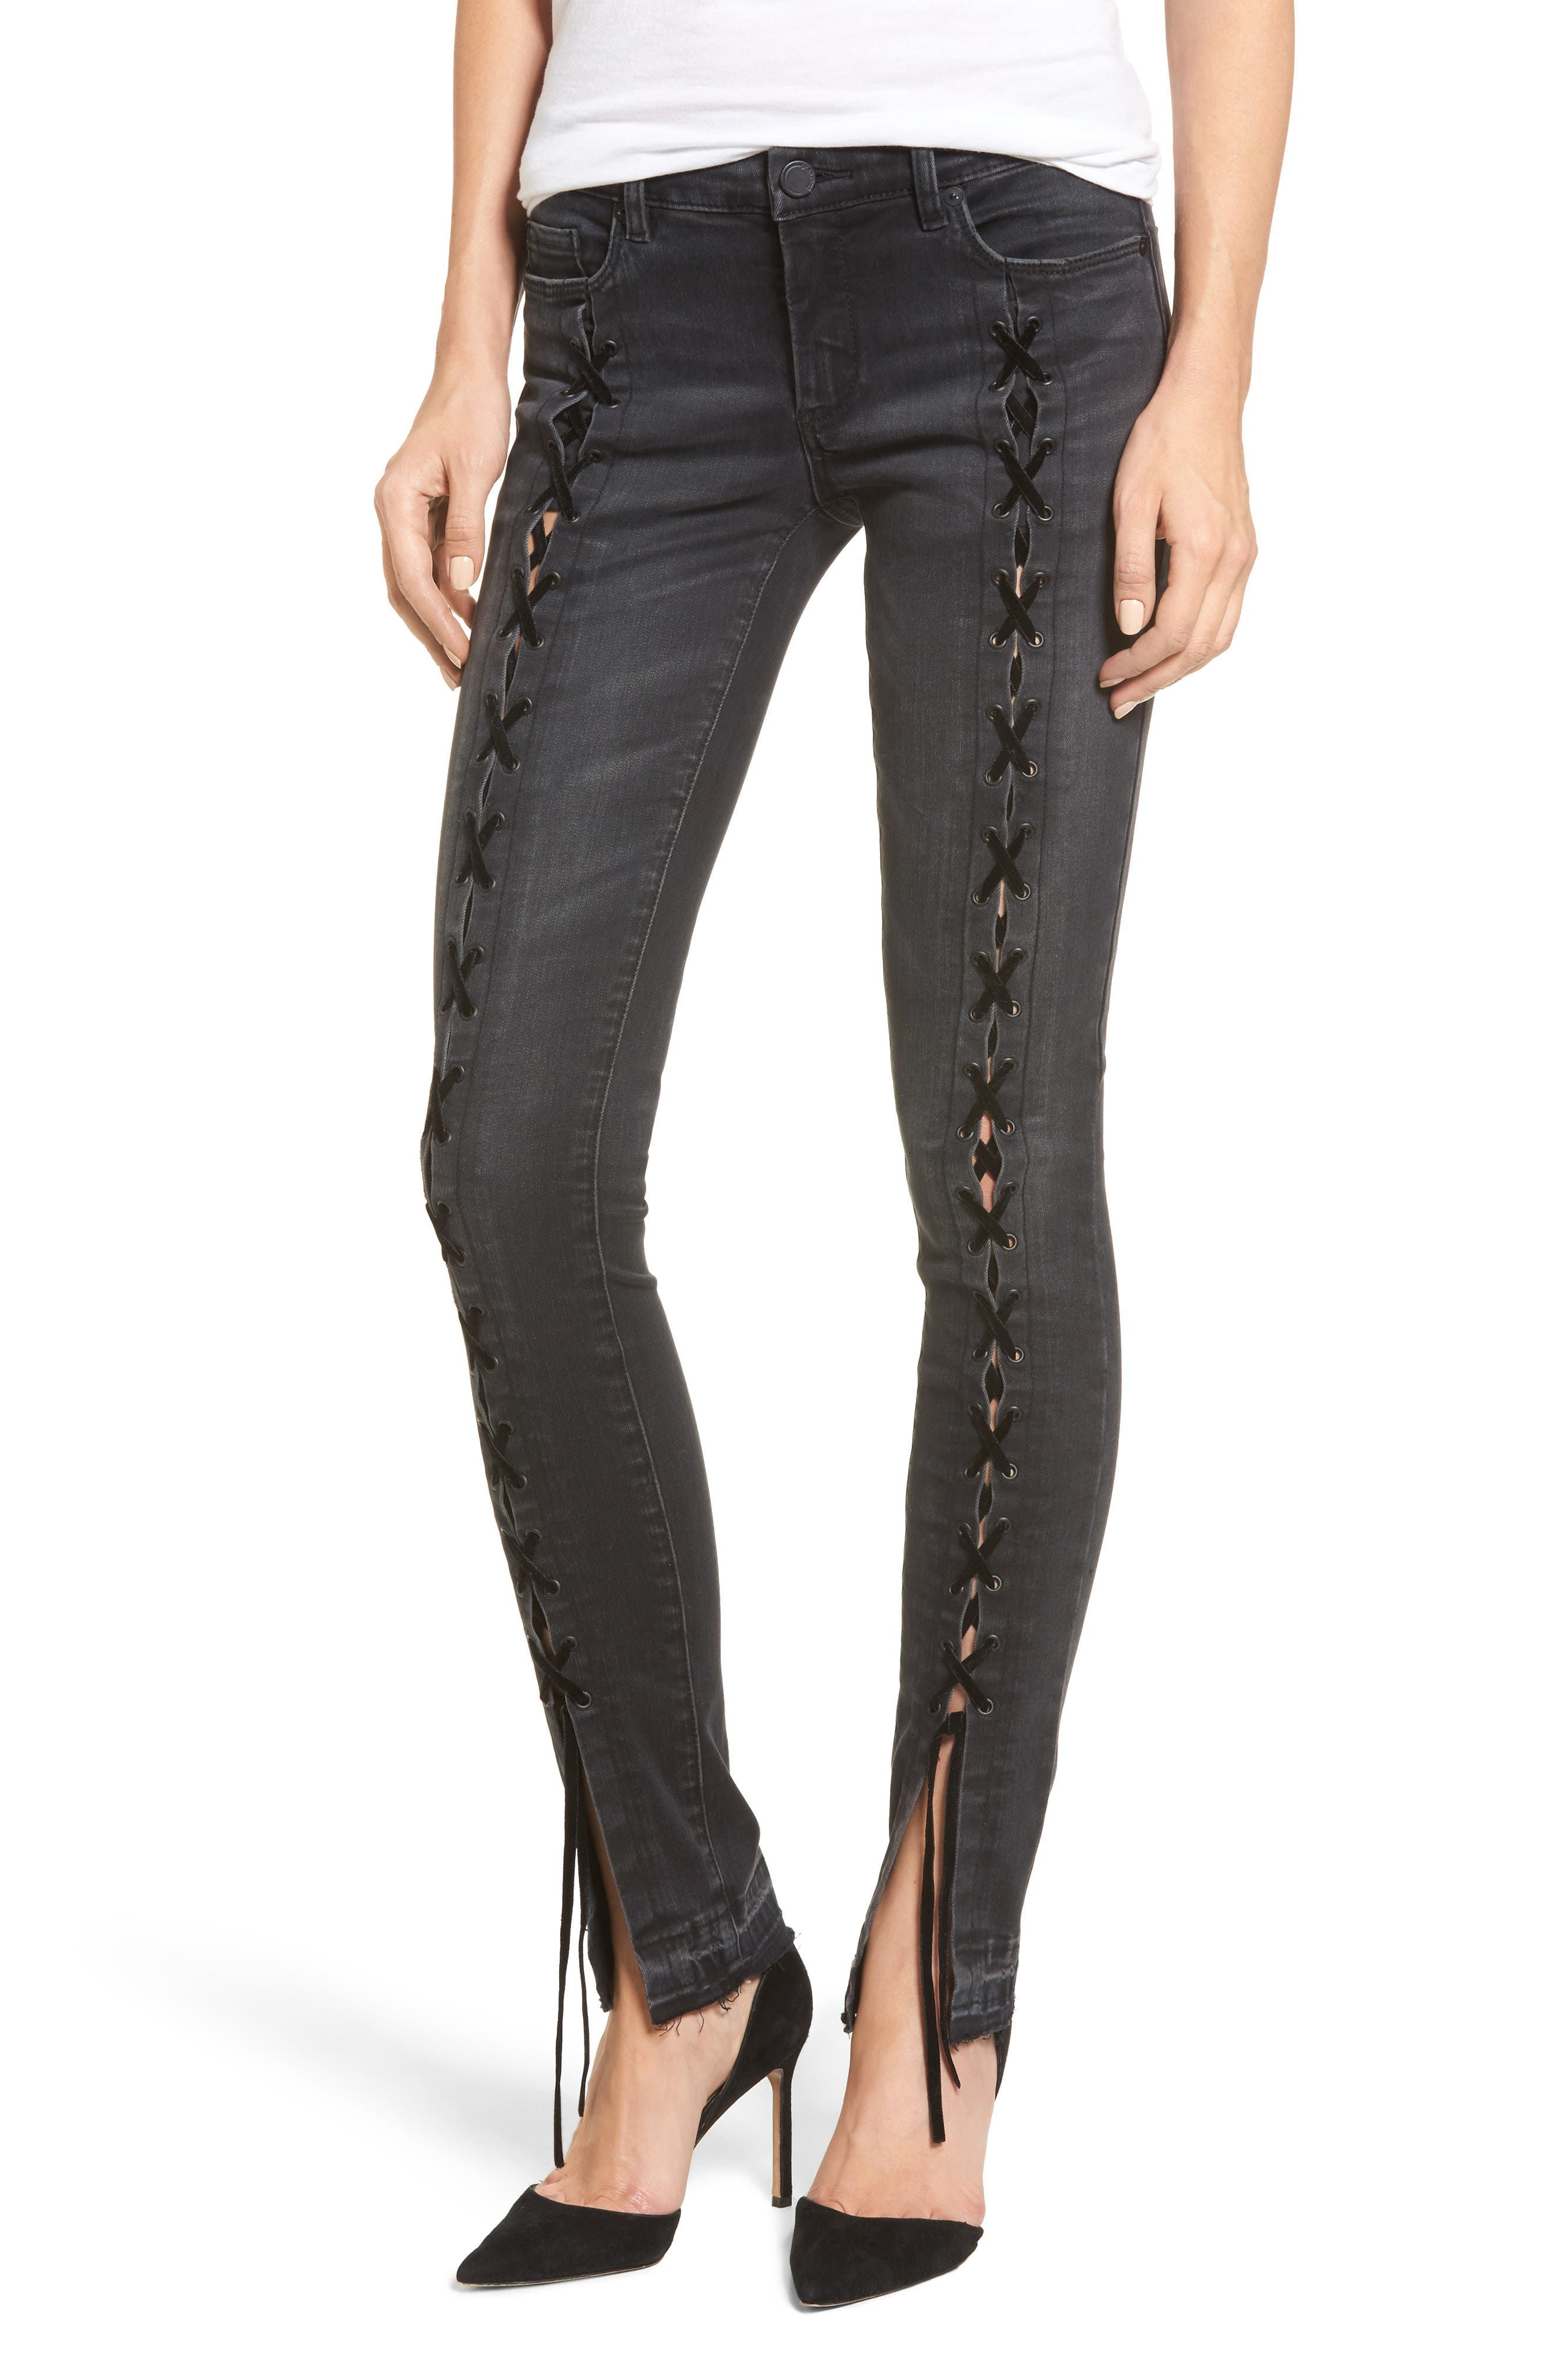 Alternate Image 1 Selected - BLANKNYC Crash Tactics Lace Up Skinny Jeans